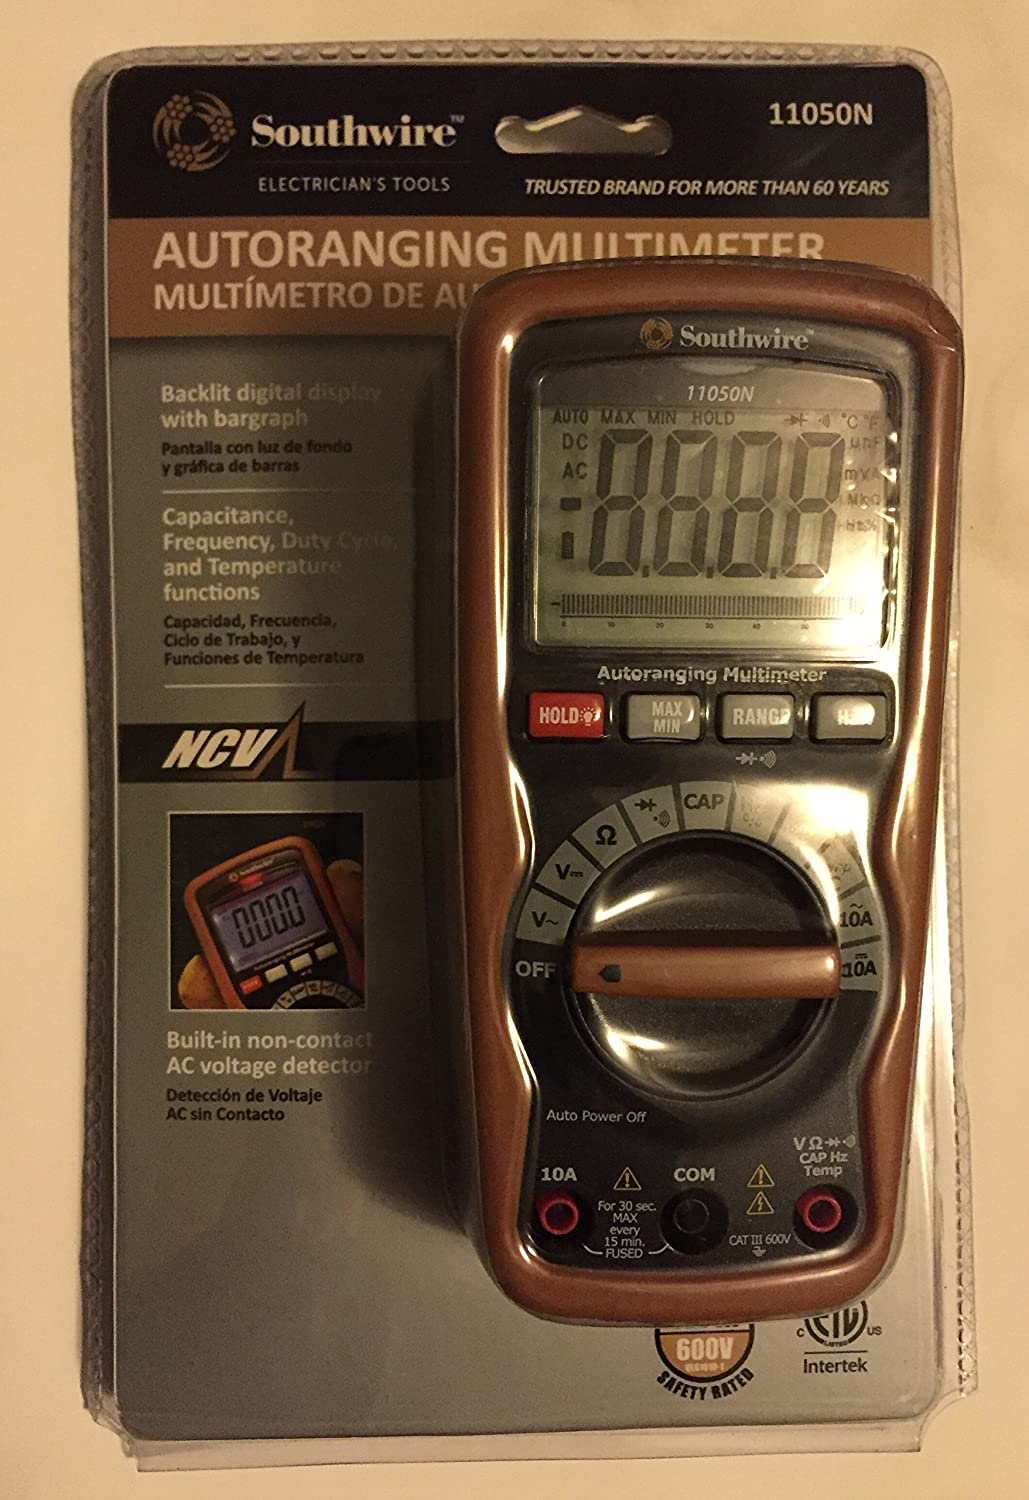 Southwire 11050N Autoranging Multimeter: Amazon.com: Industrial & Scientific